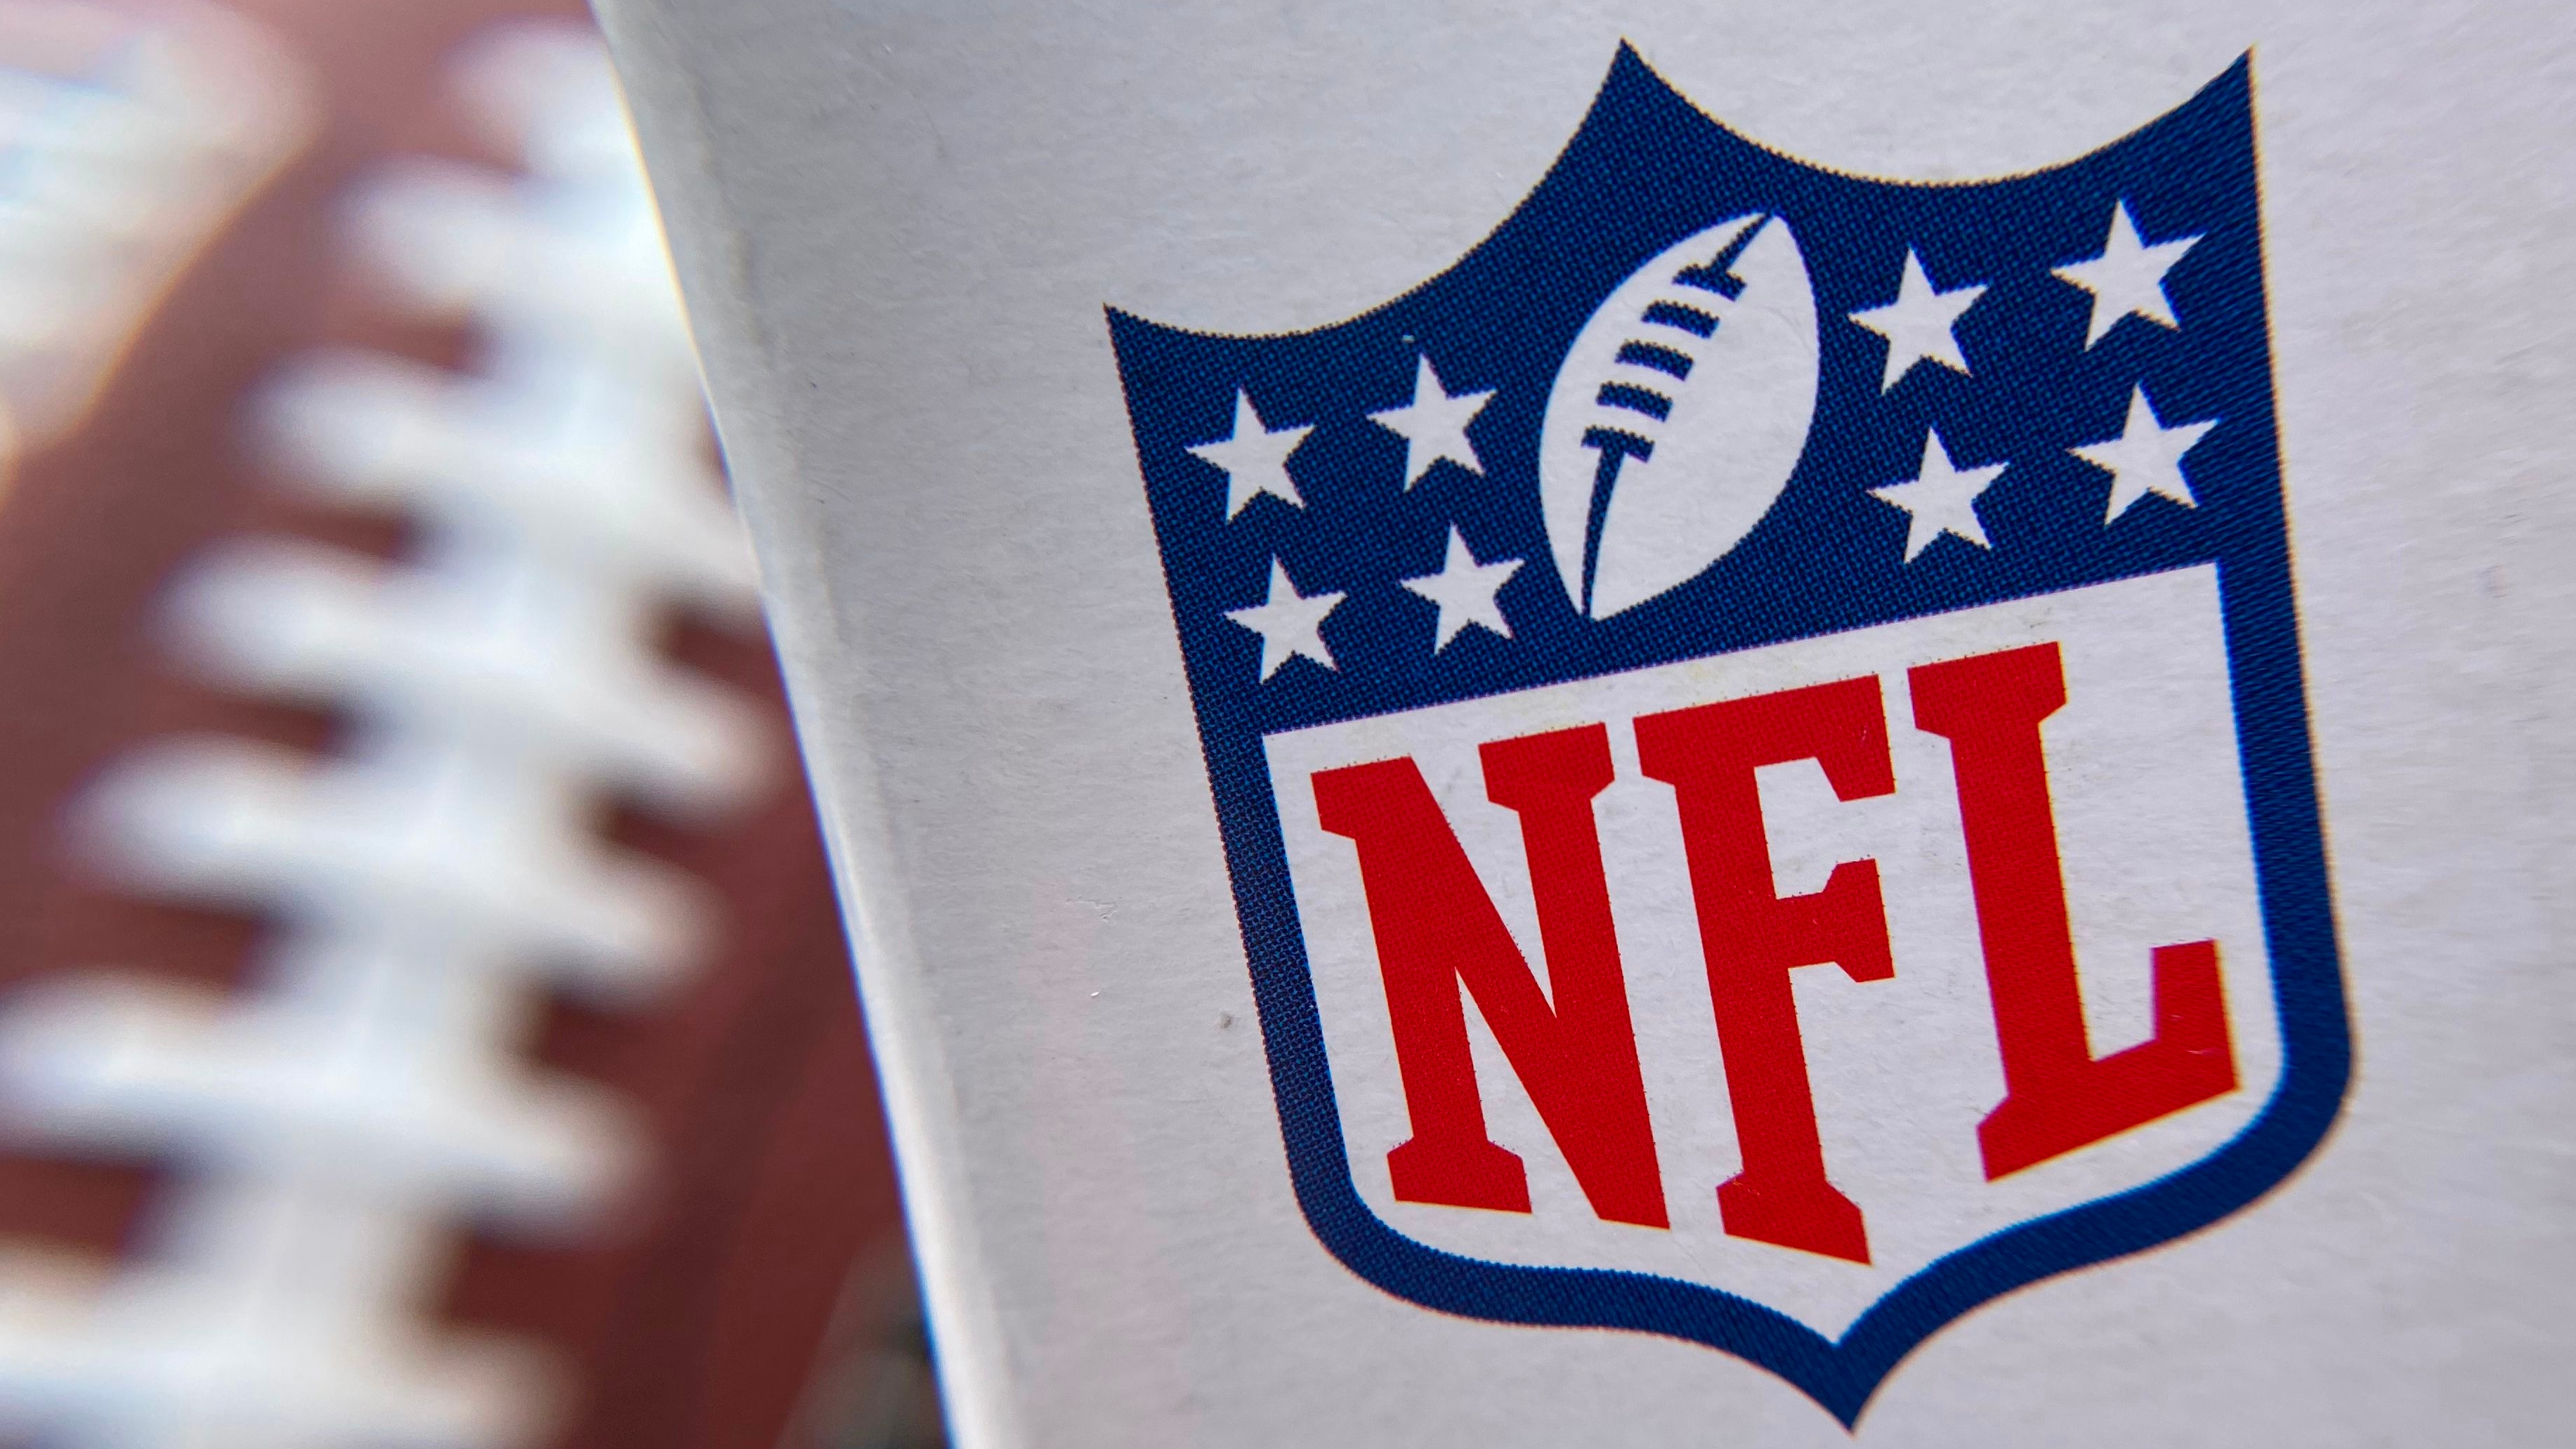 Nfl To Test For Coronavirus Daily Except On Game Days The Washington Post